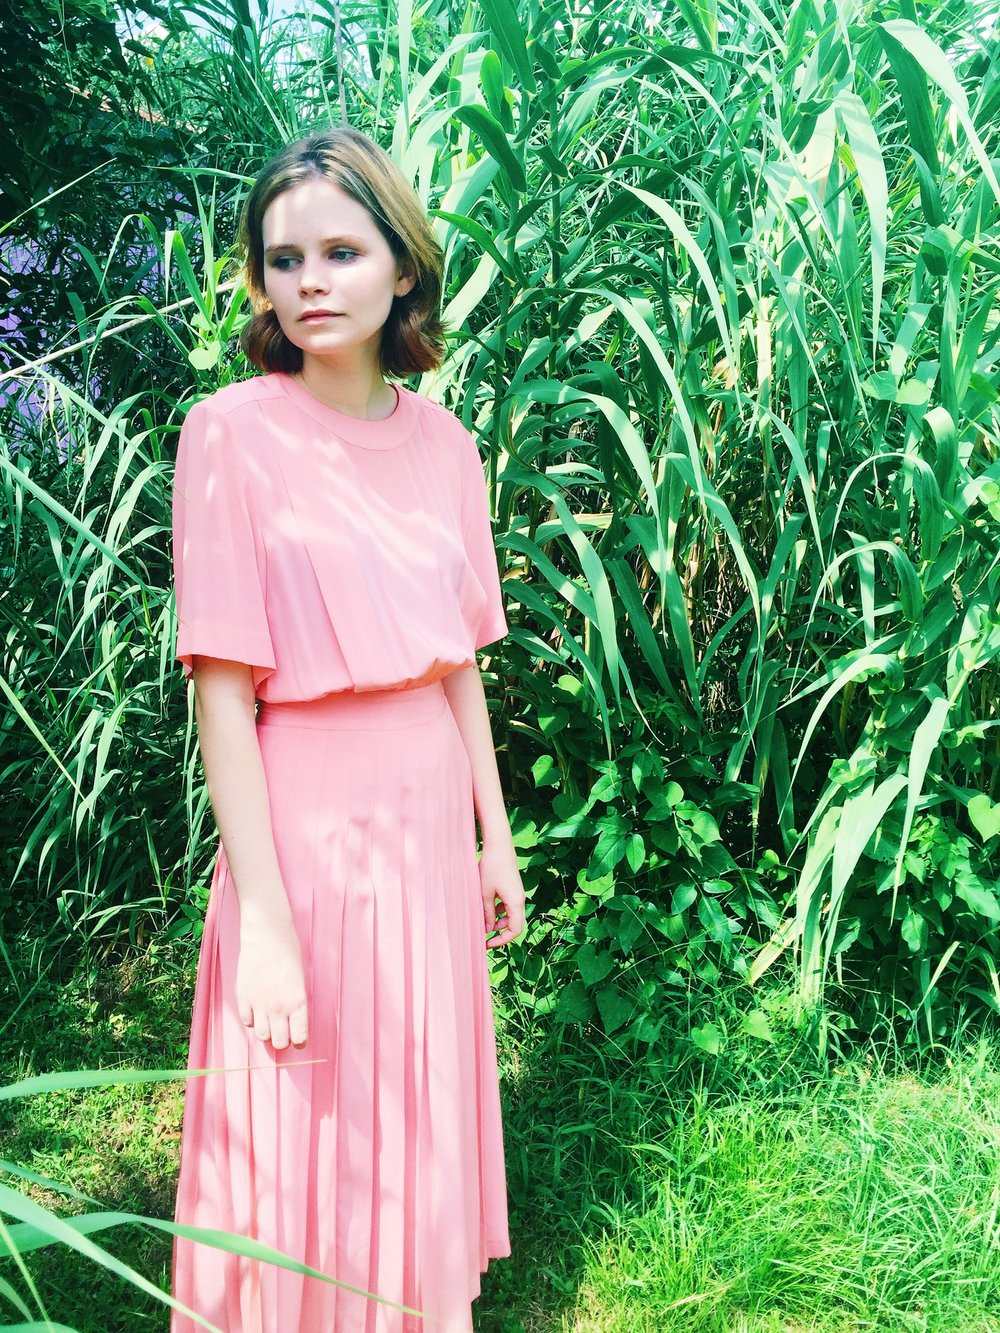 wonaponatime-vintage-dress-pink-maxi-pleated